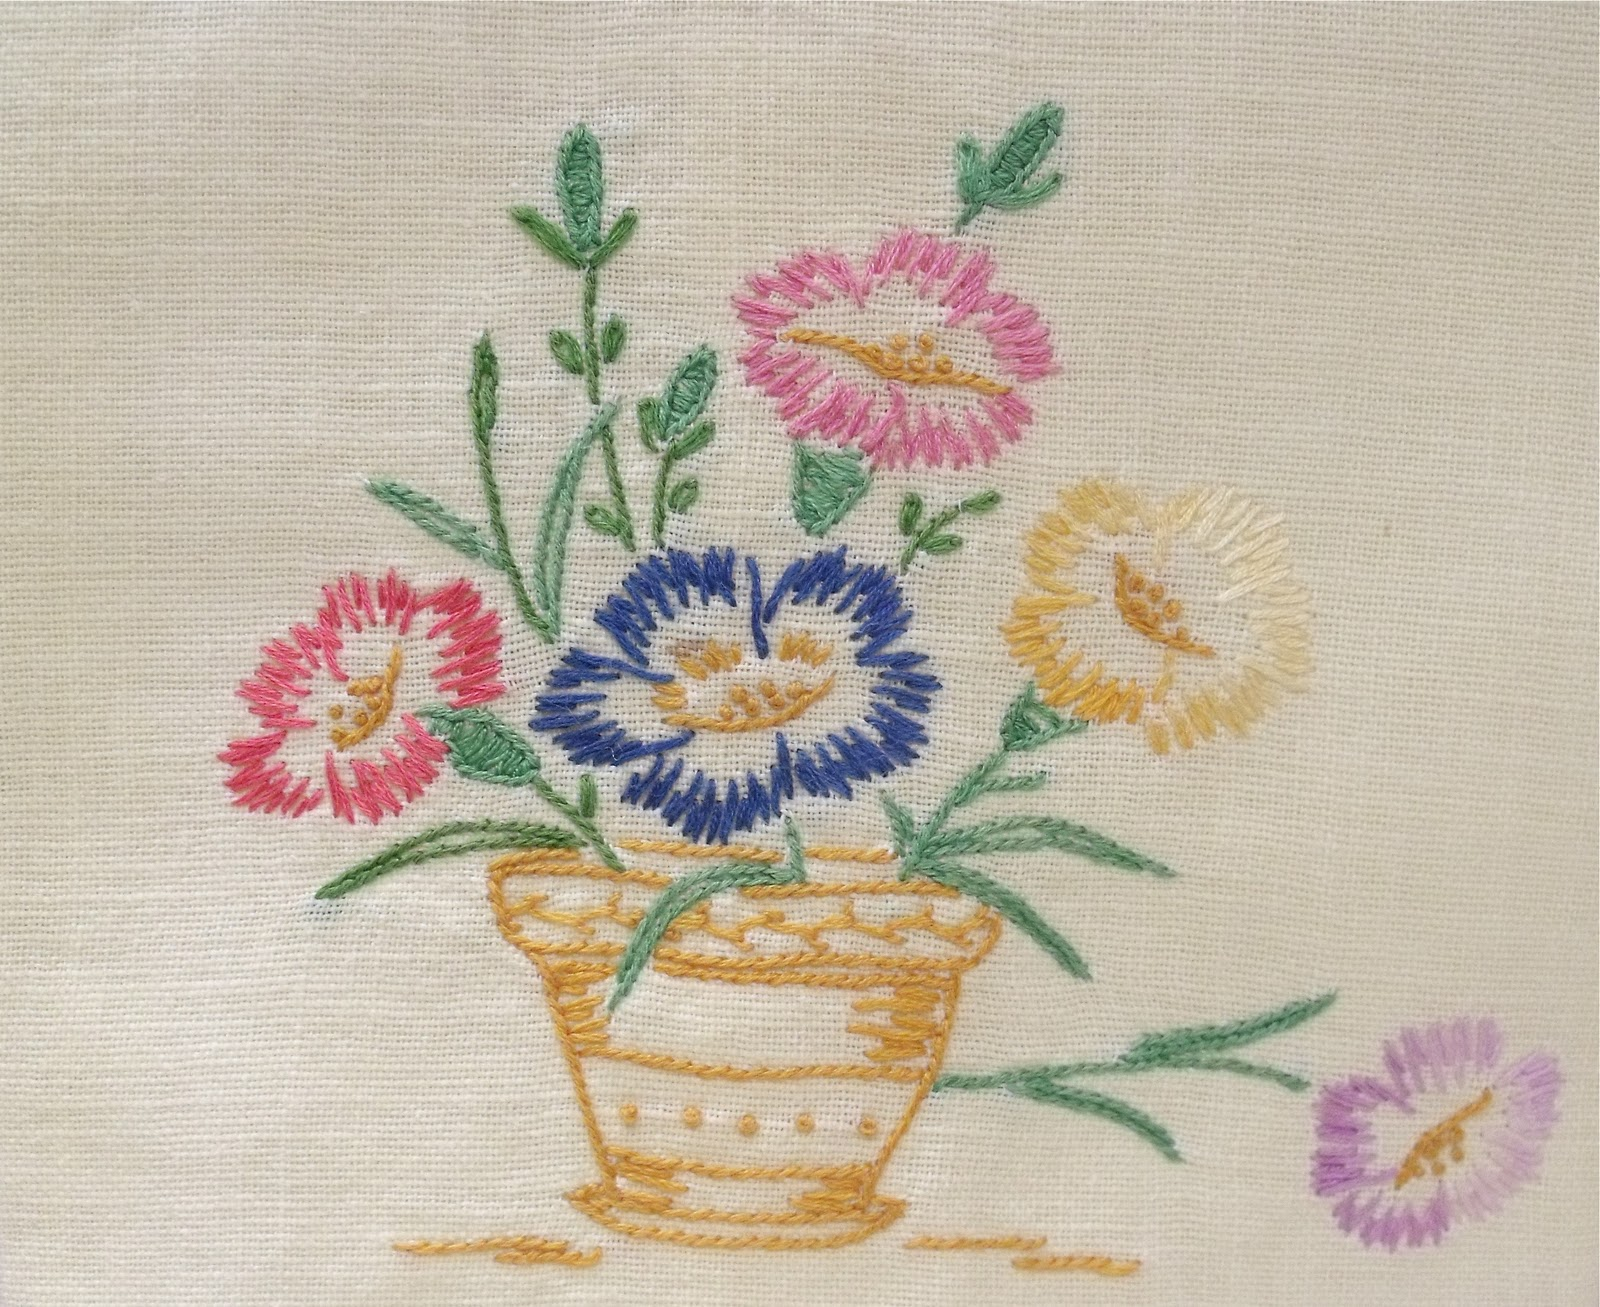 Bed sheet designs hand embroidery - A Lovely Hand Embroidered Linen Towel The Linen Is A Pale Yellow